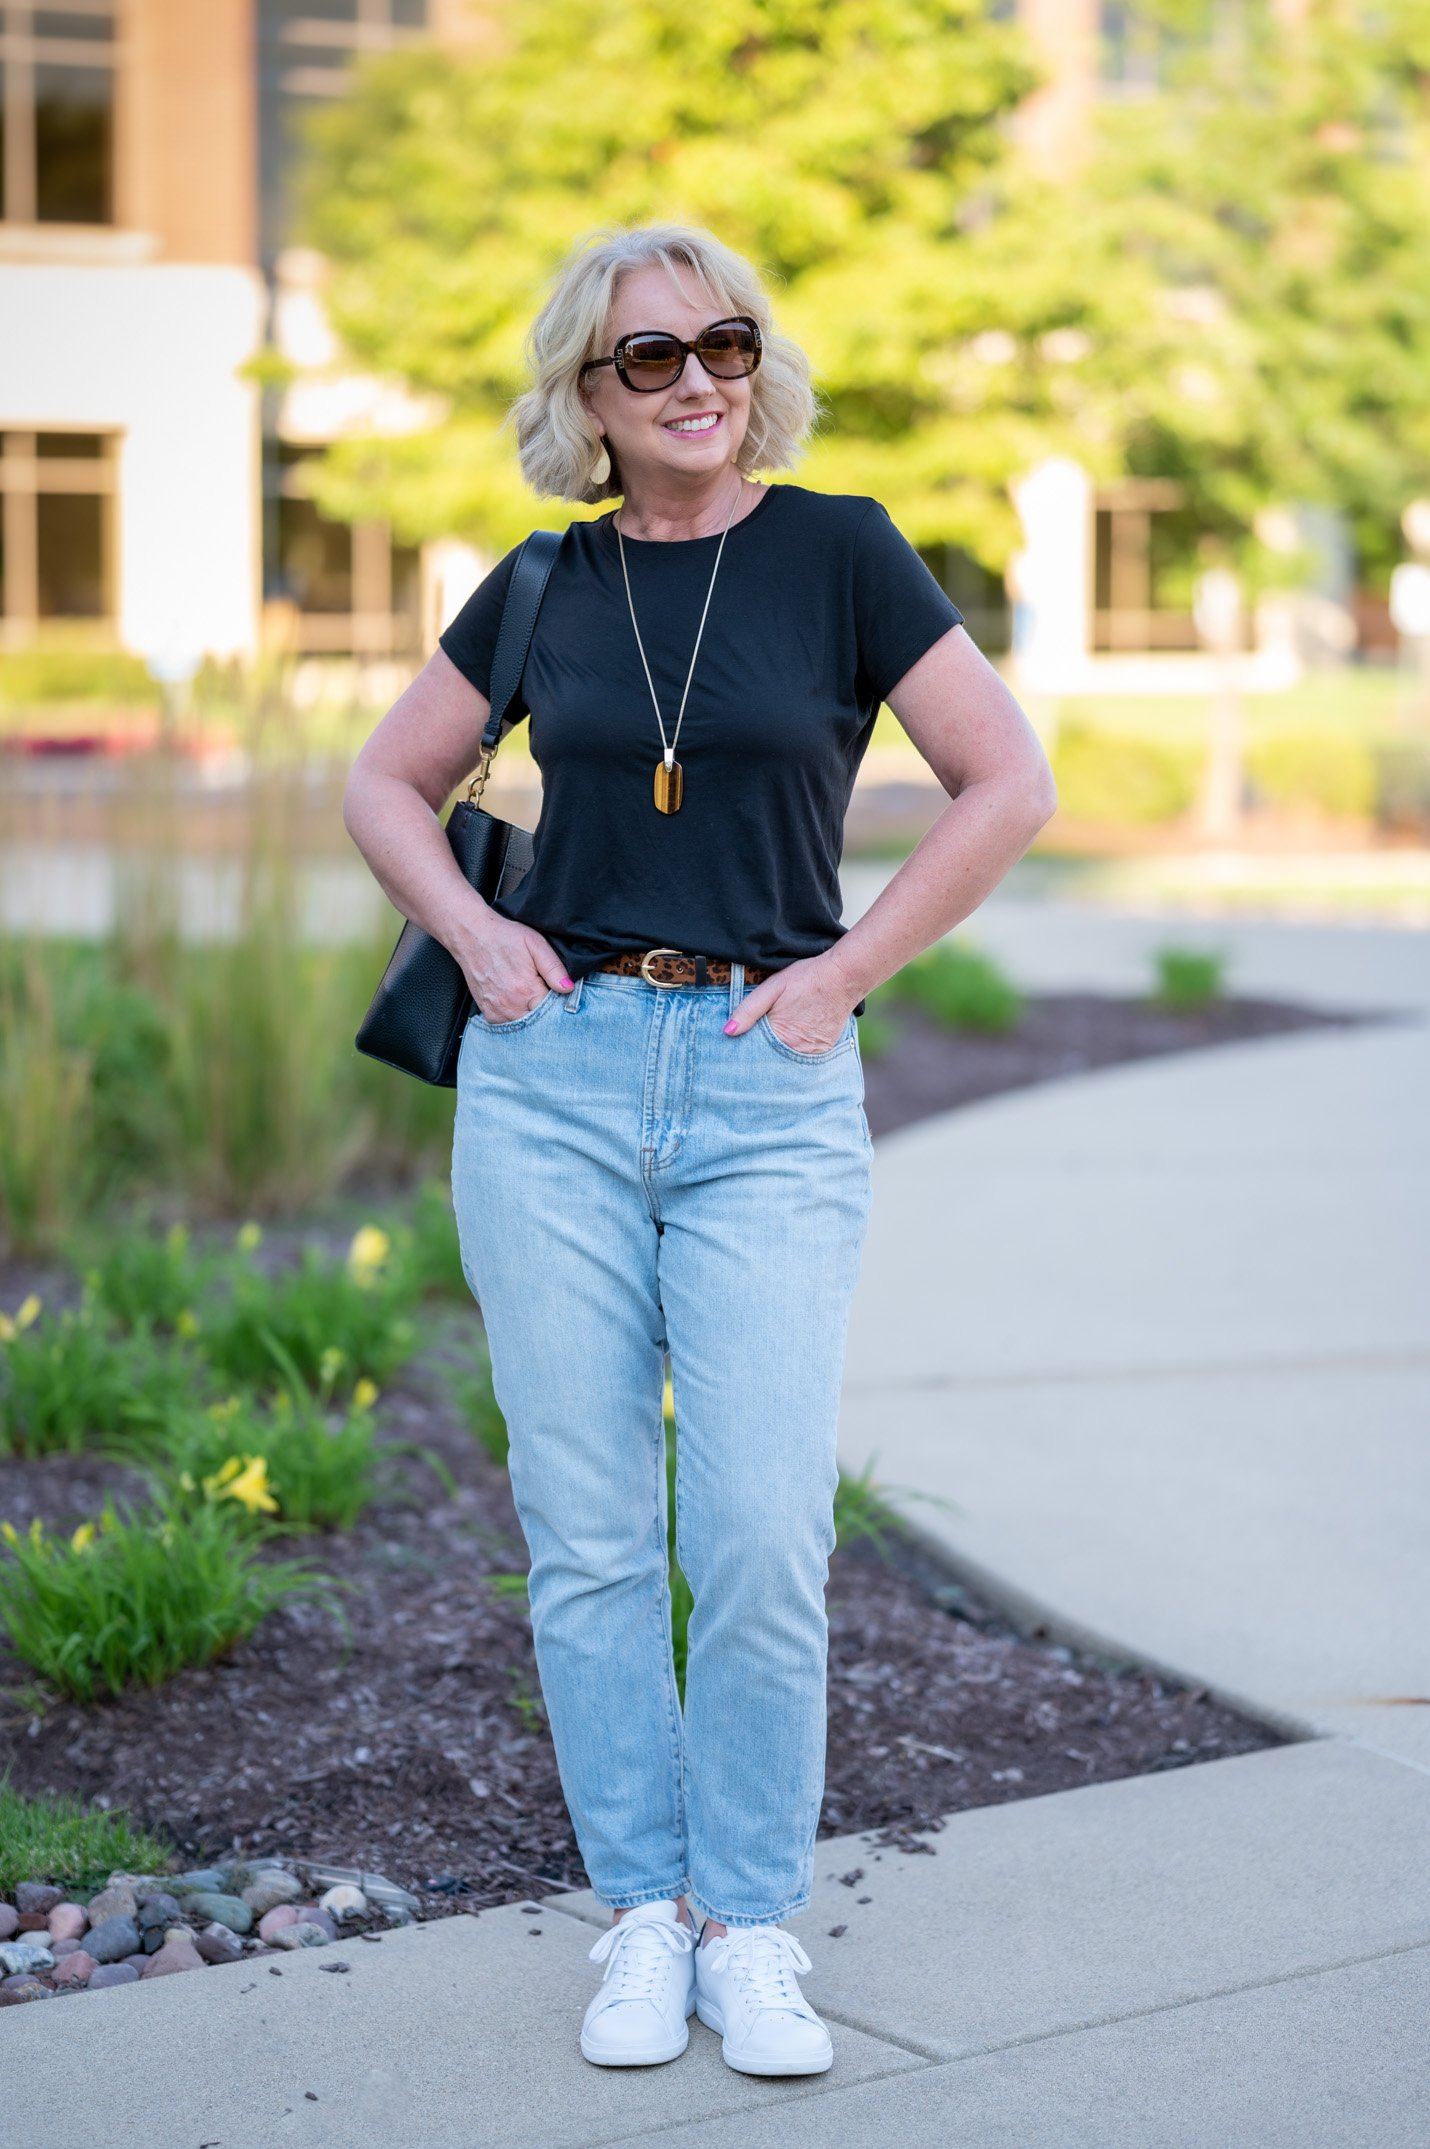 Summertime Elevated Casual Jeans Style Uniform